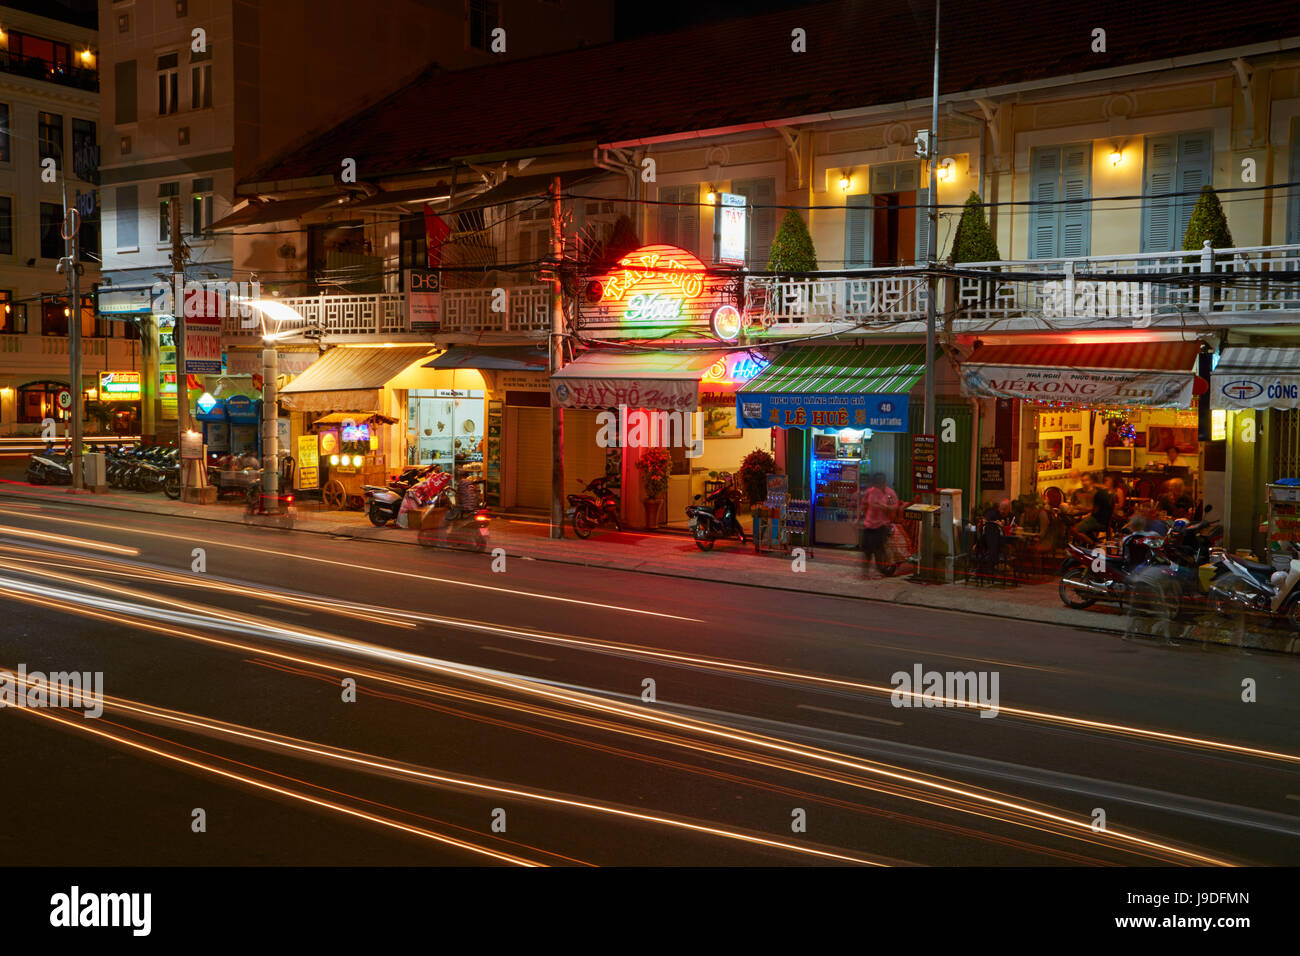 Shops and restaurants at night, Can Tho, Mekong Delta, Vietnam - Stock Image